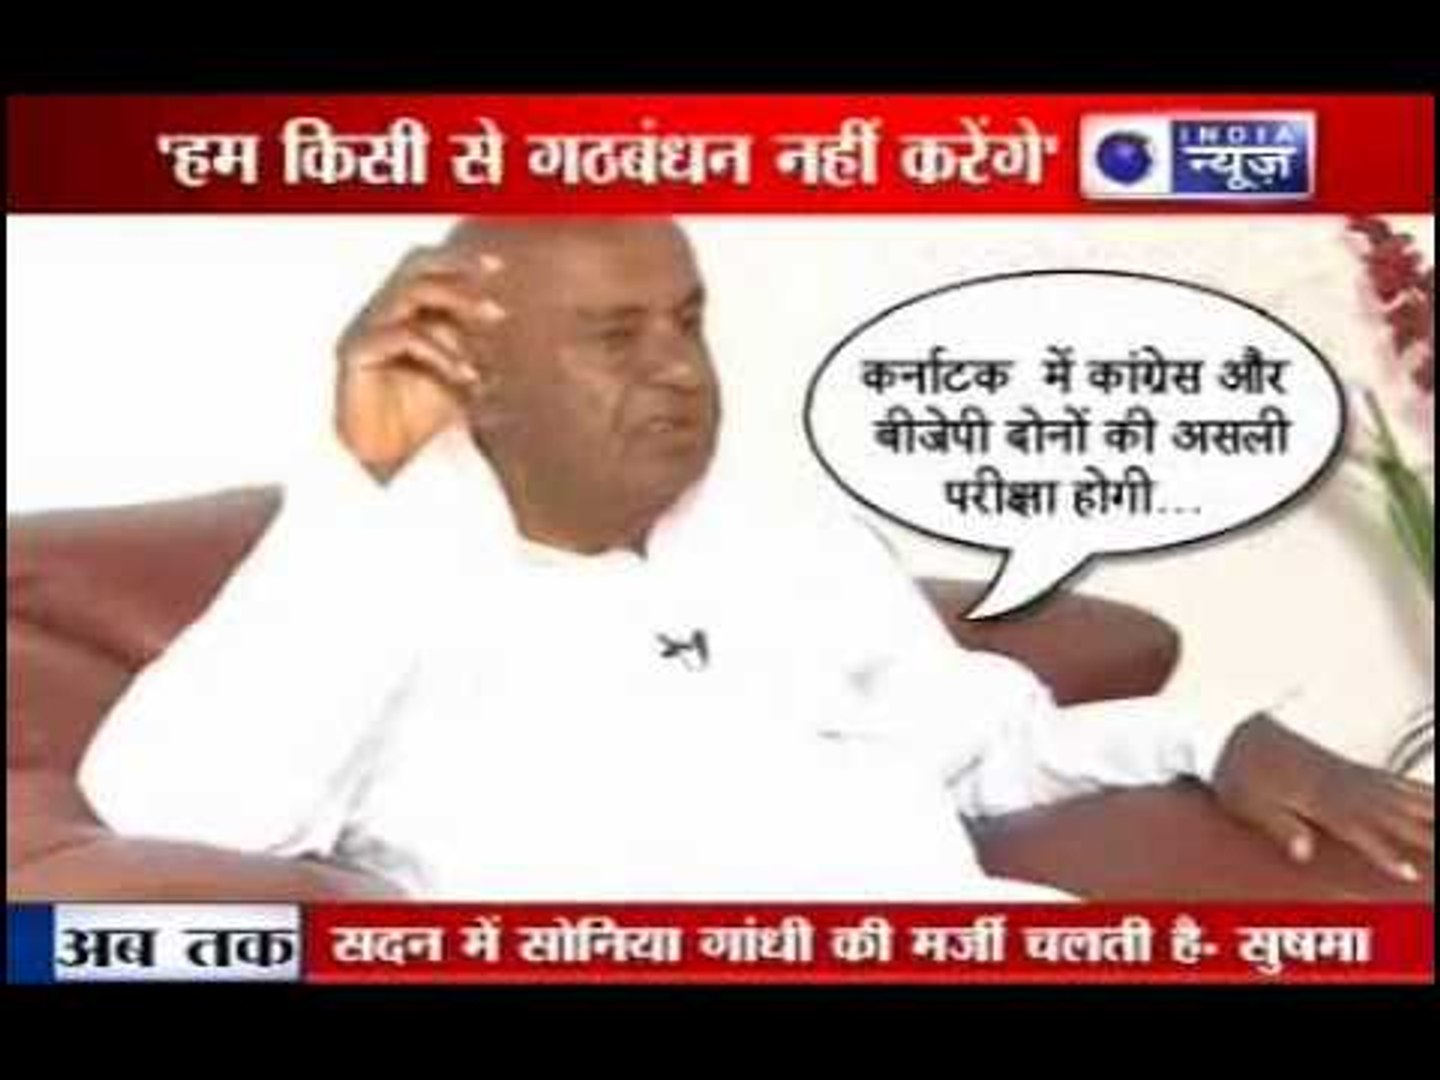 India News: Congress and BJP Our political enemies say Deve Gowda